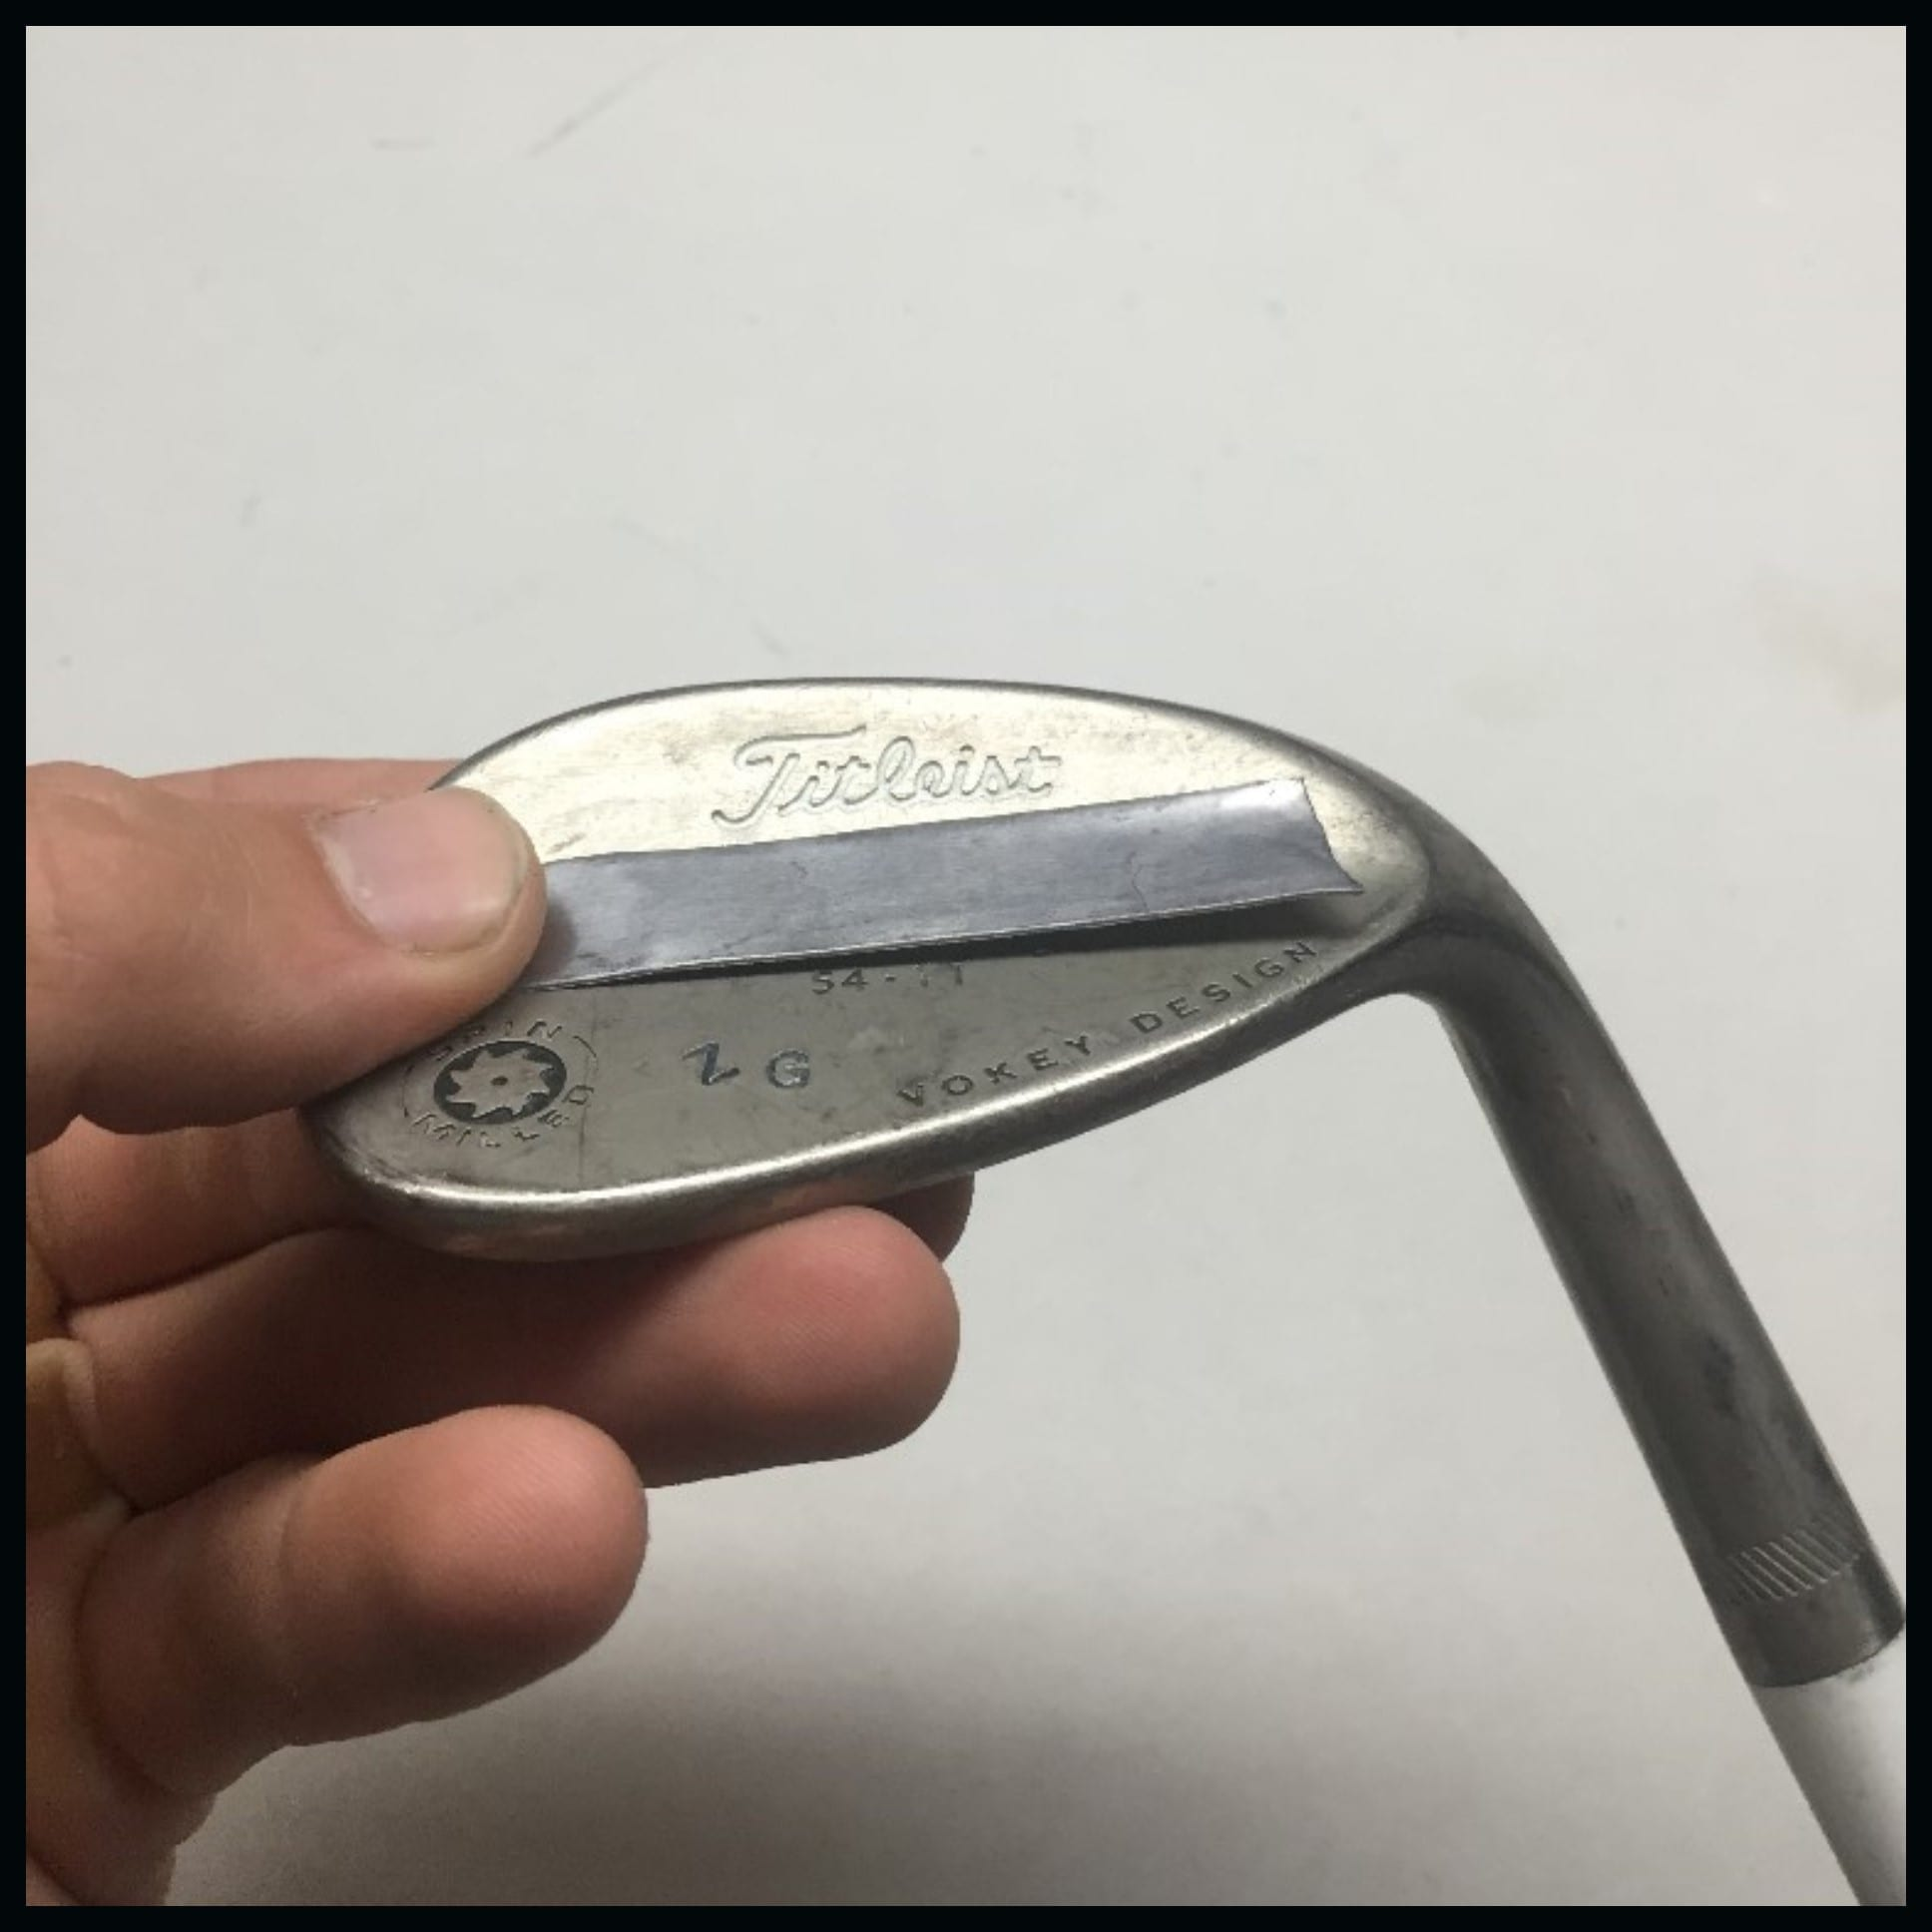 applying lead tape to iron or wedge